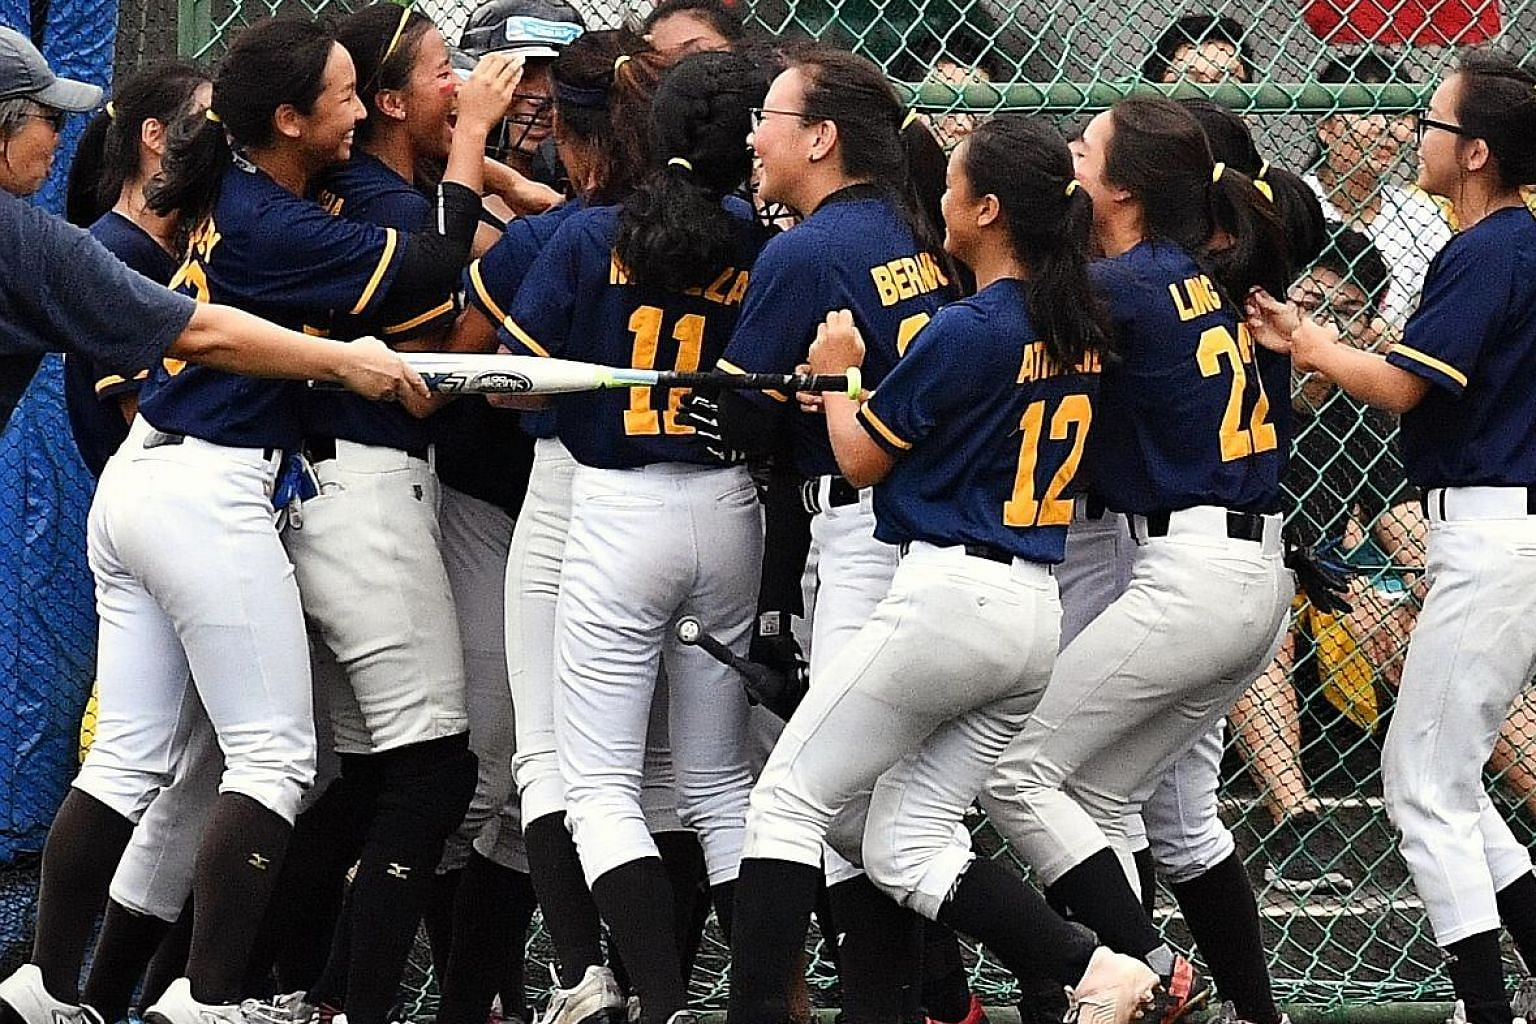 Anglo-Chinese Junior College players mobbing Shino Lim after her home run in the 5-0 win over Hwa Chong Institution on Monday in the Schools National girls' A Division softball final. The match at Raffles Institution was completed yesterday after bad